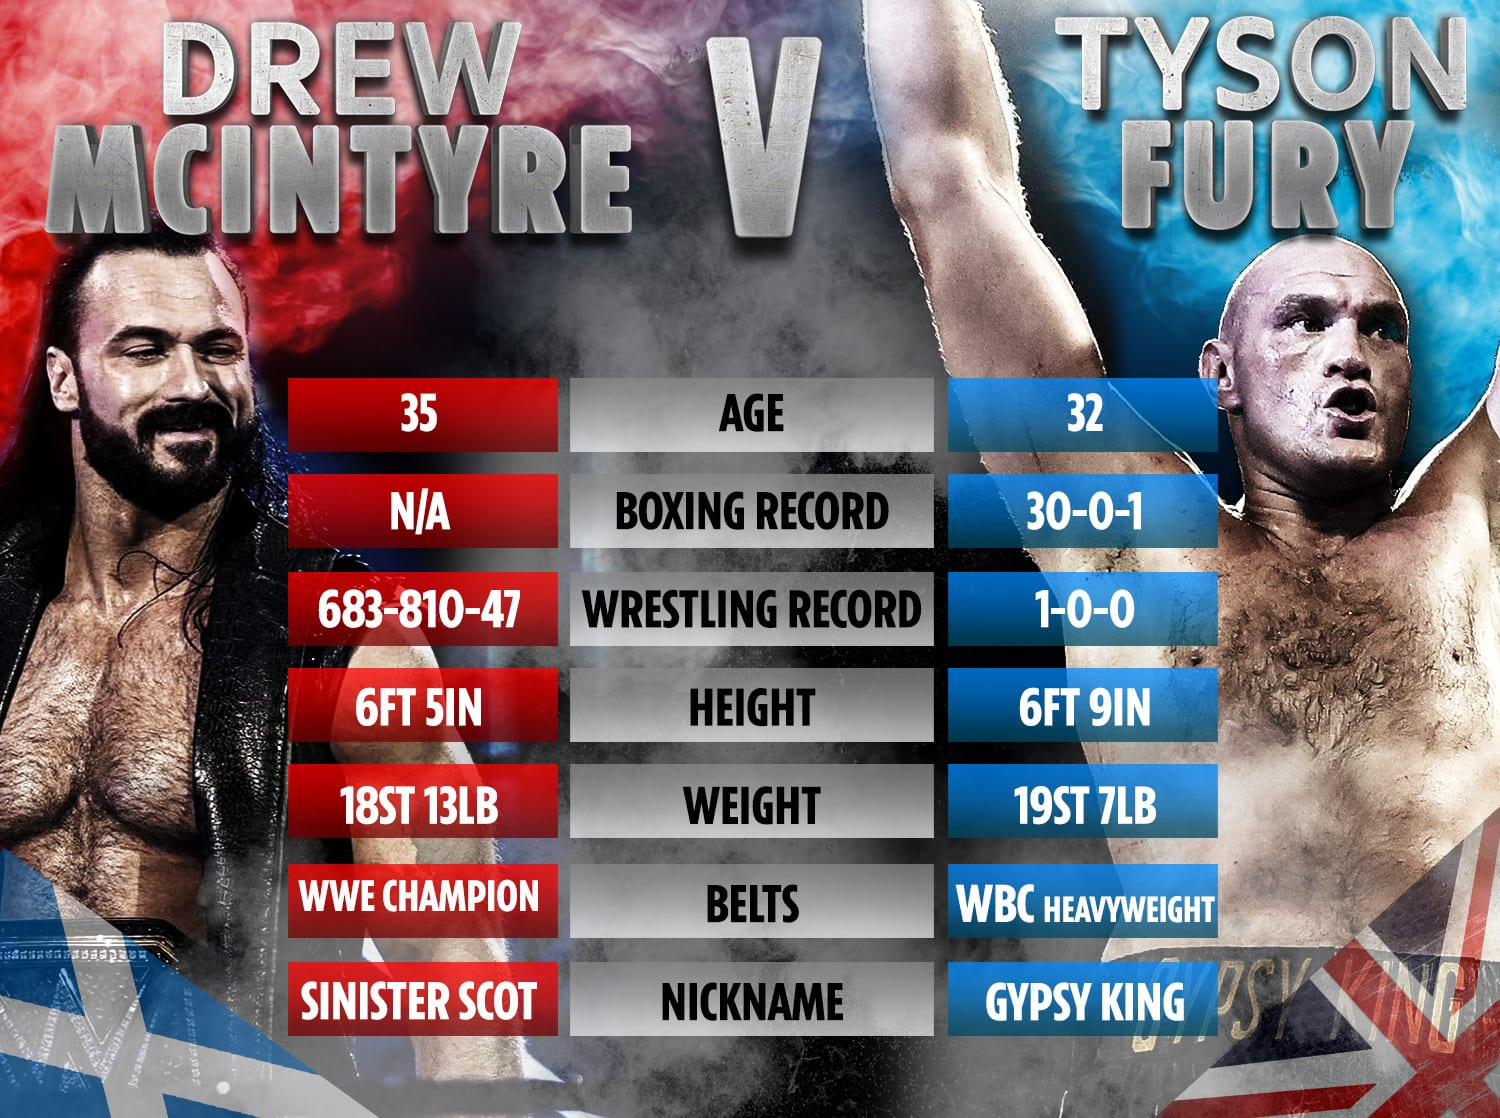 Drew McIntyre Tyson Fury Tale Of The Tape